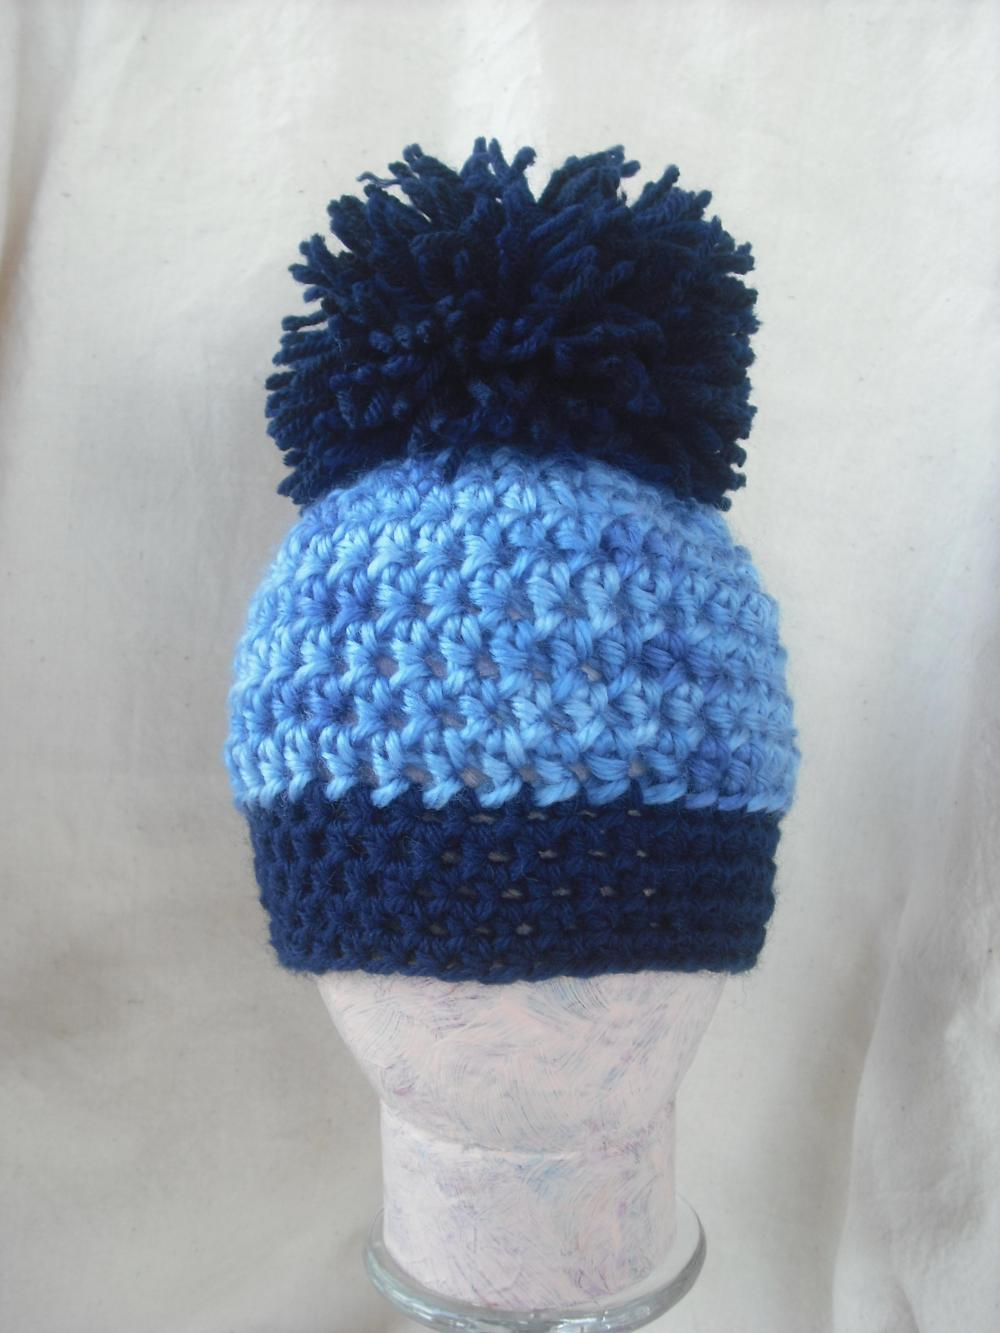 Boys Newborn Blue pom pom crochet hat, Ready to ship